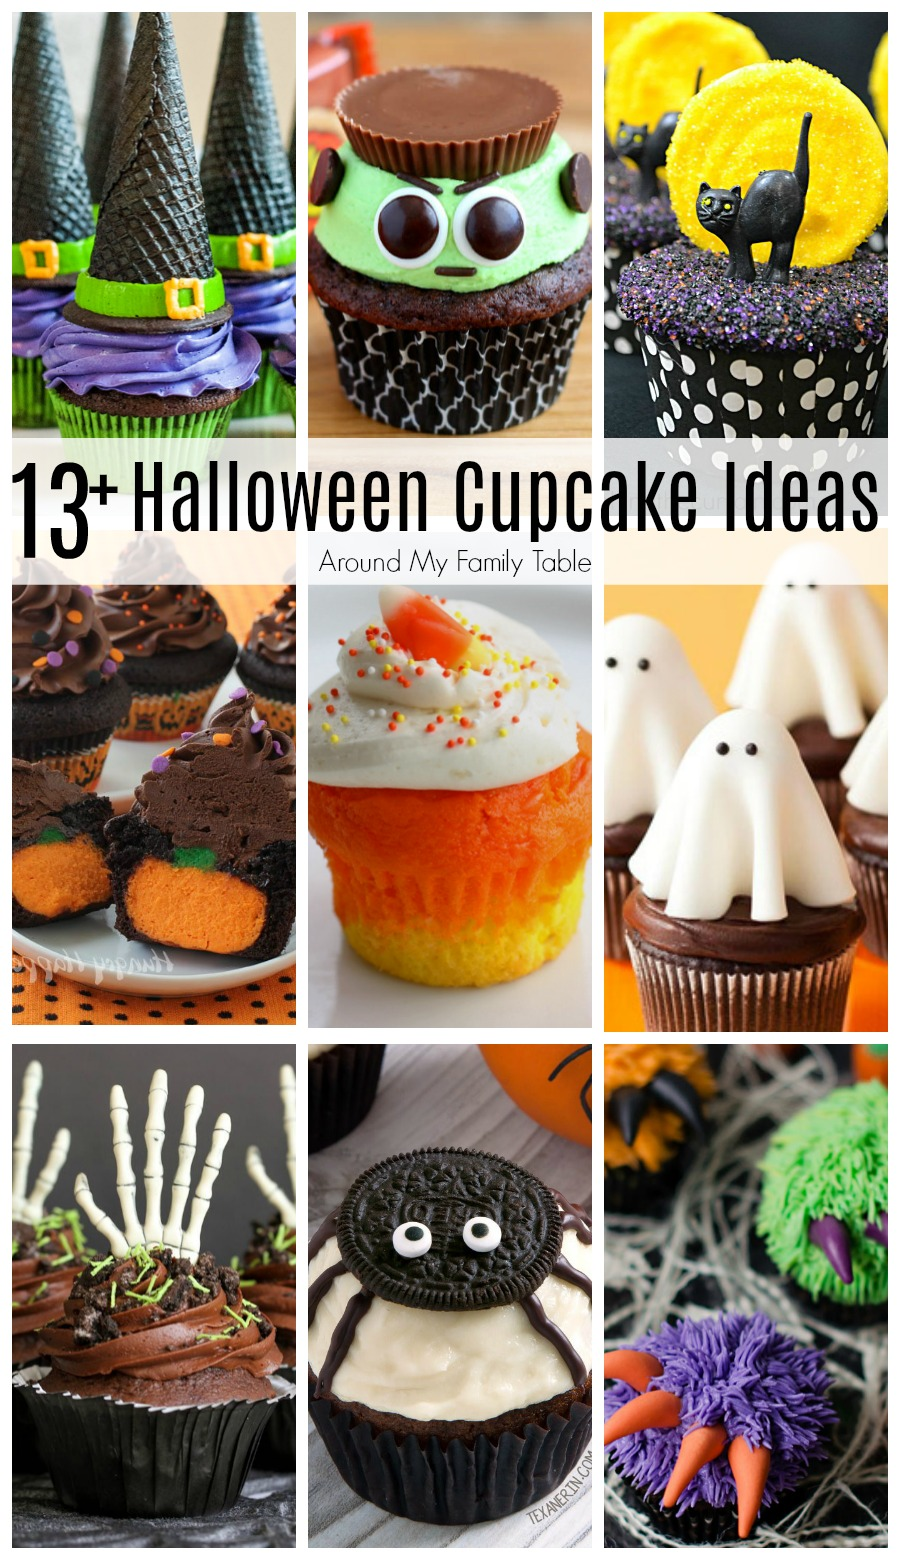 Look no further! I've found over 13 cute and creepy Halloween cupcake ideas. These are the absolute best Halloween Cupcakes for all of your party needs!